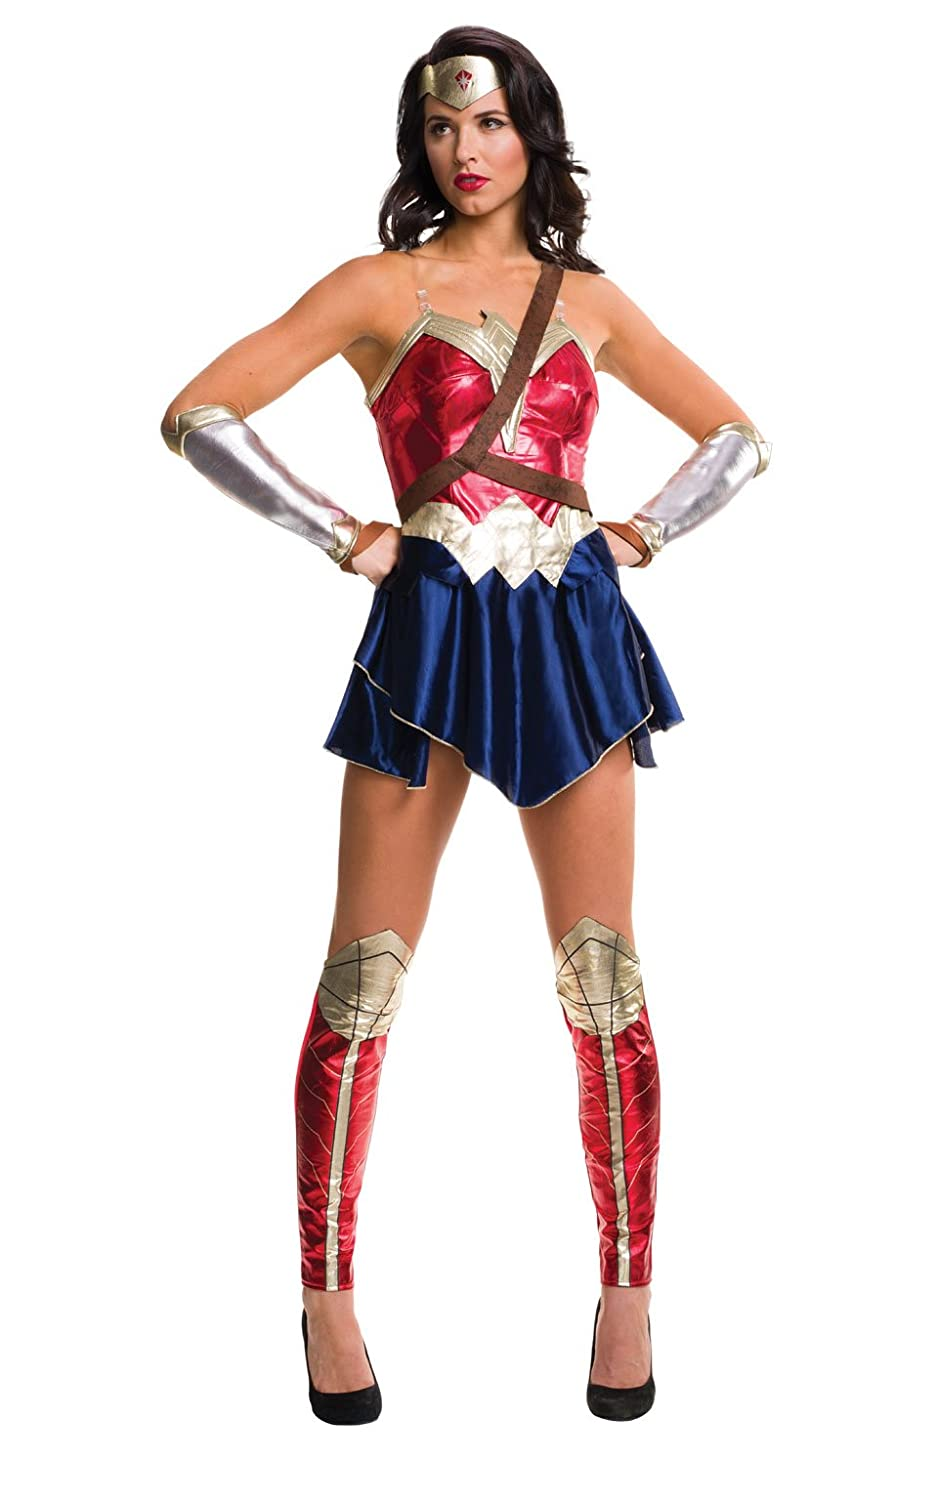 Halloween costume ideas: From Harley Quinn to Wonder Woman